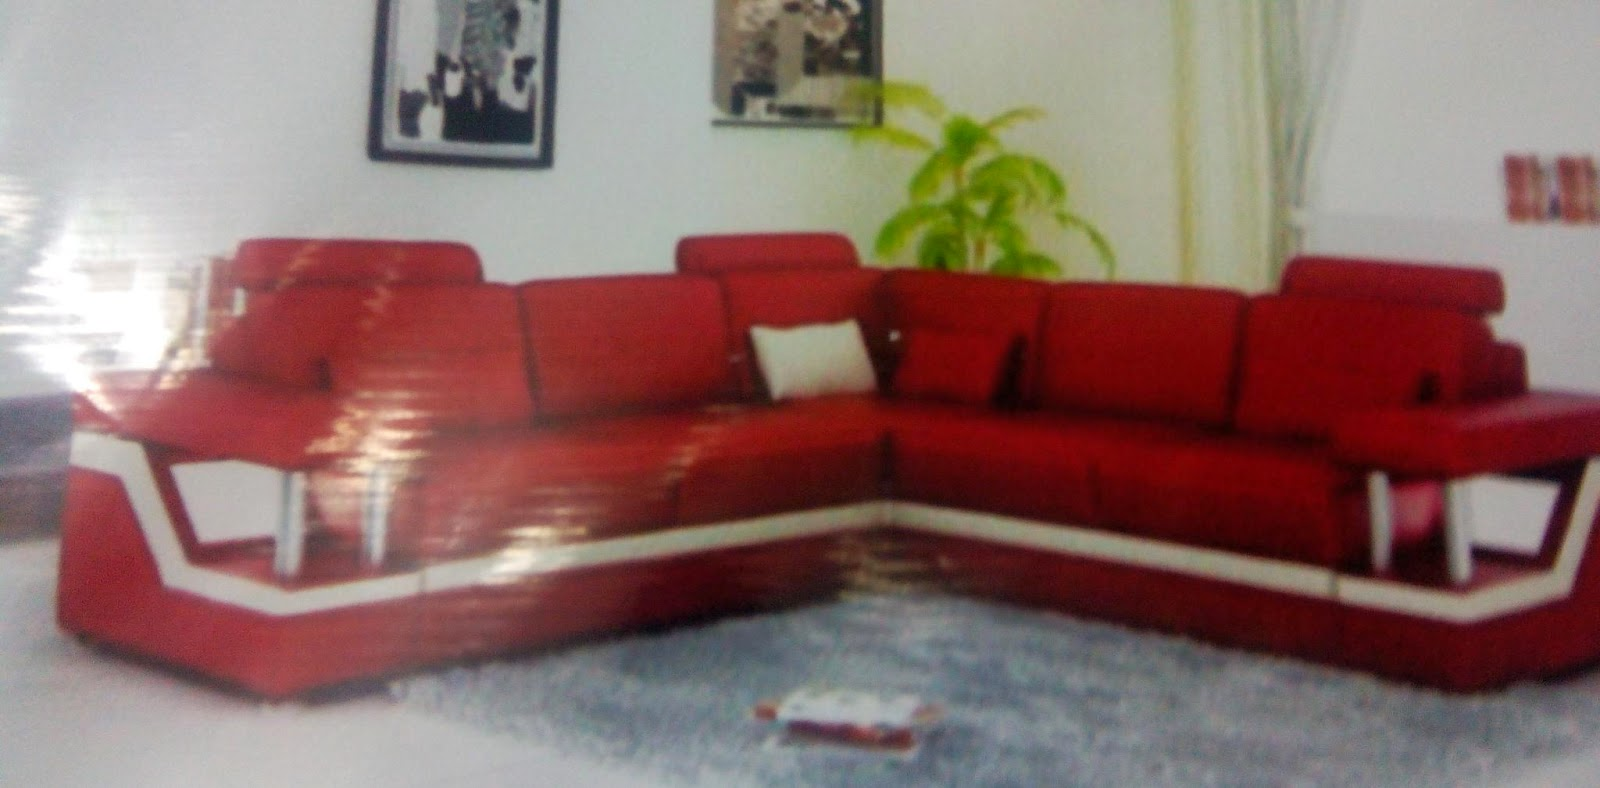 Sofa Set Price Ahmedabad We Deal In Sofa Set Manufacture At Lowest Cost Compare To